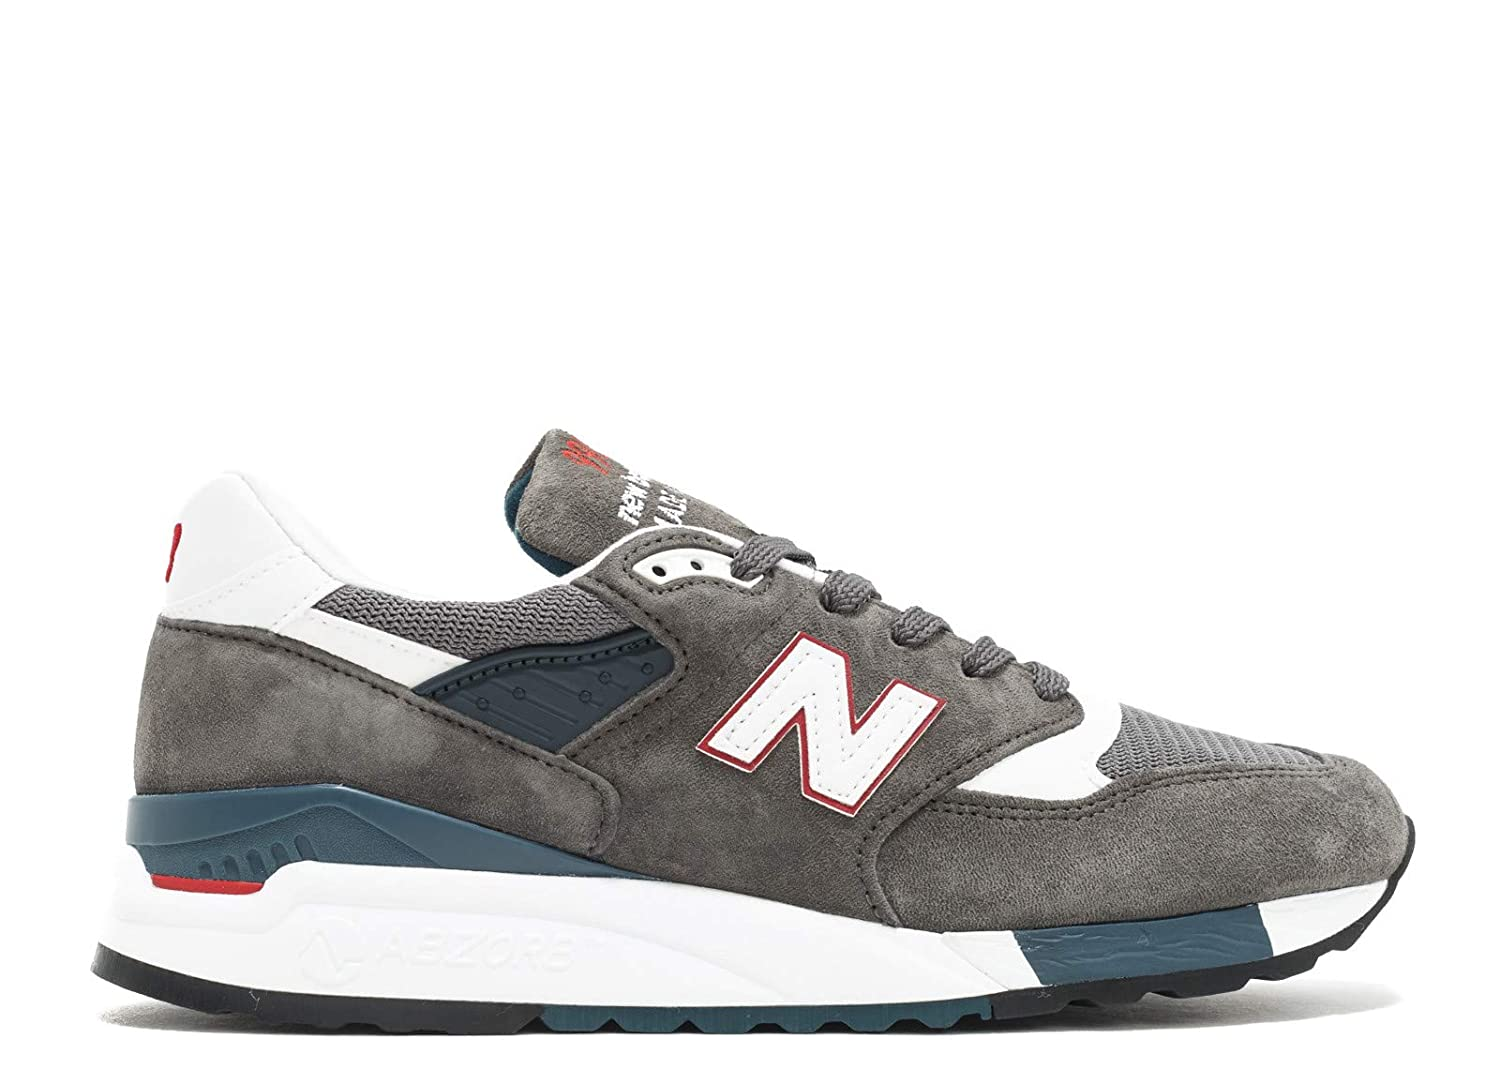 low priced 5385f 5063f Amazon.com | New Balance 998 Men's Casual Sneakers, Size 12 ...